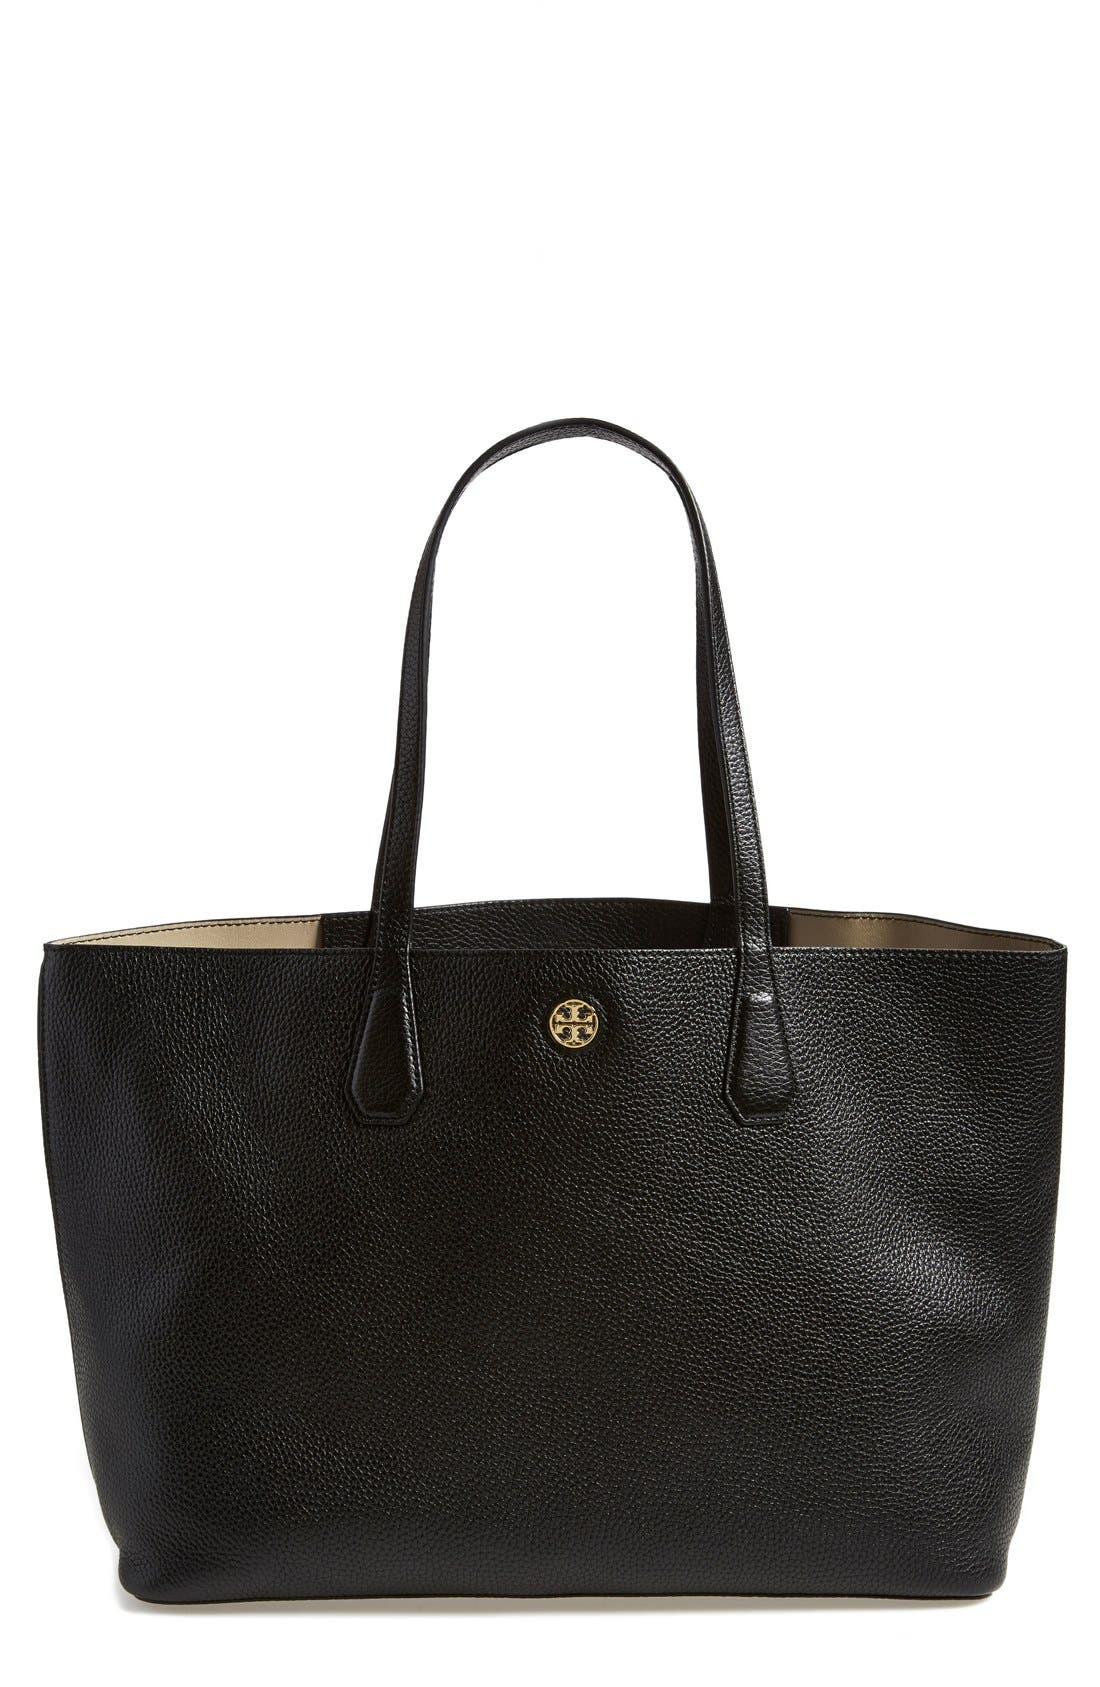 TORY BURCH, 'Perry' Leather Tote, Main thumbnail 1, color, 001